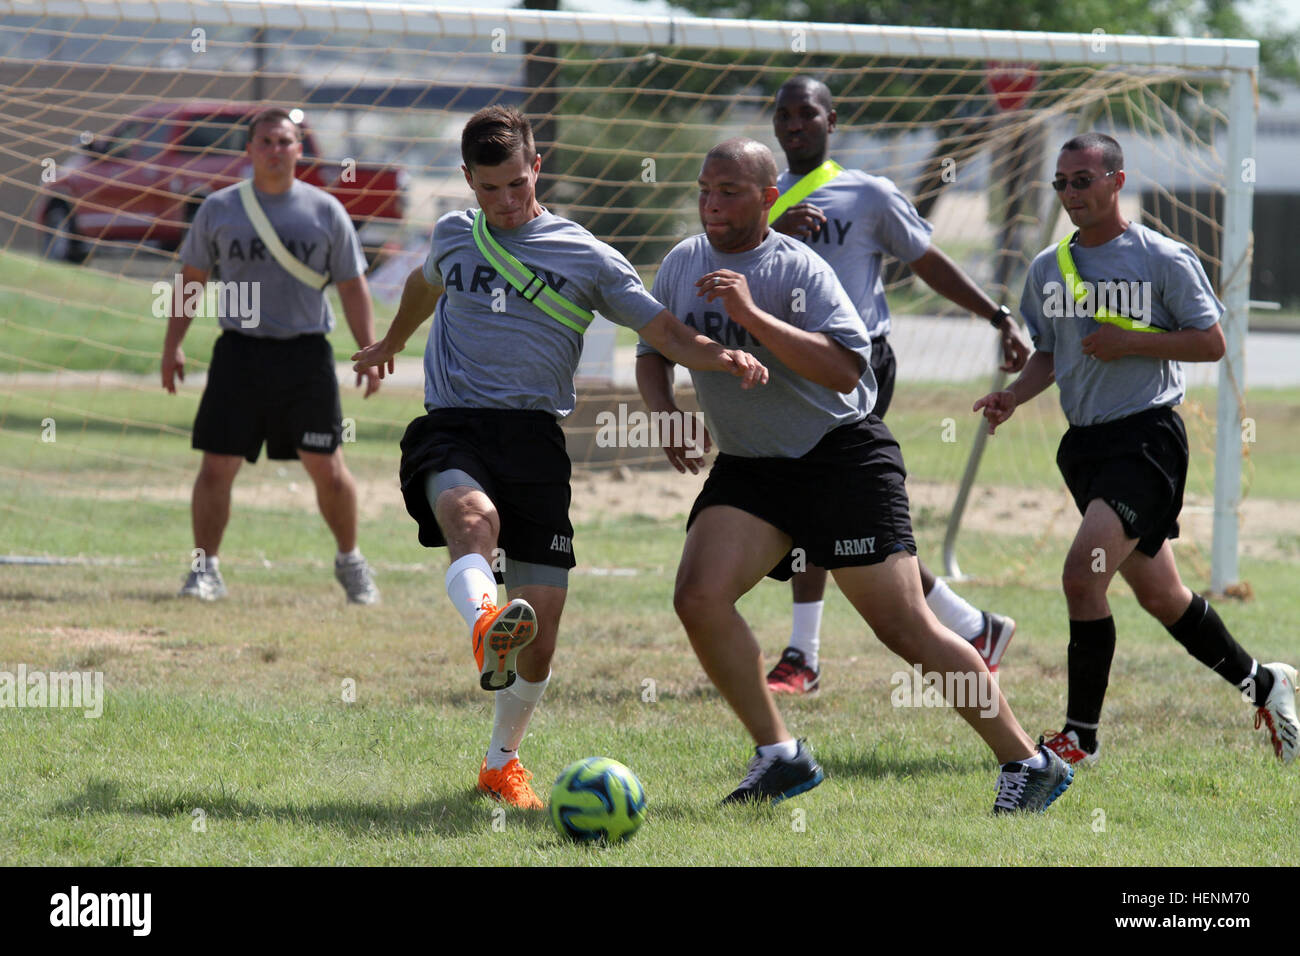 Troops fight to maintain offensive possession of the ball during a soccer game as part of the 'Warrior Challenge' - Stock Image